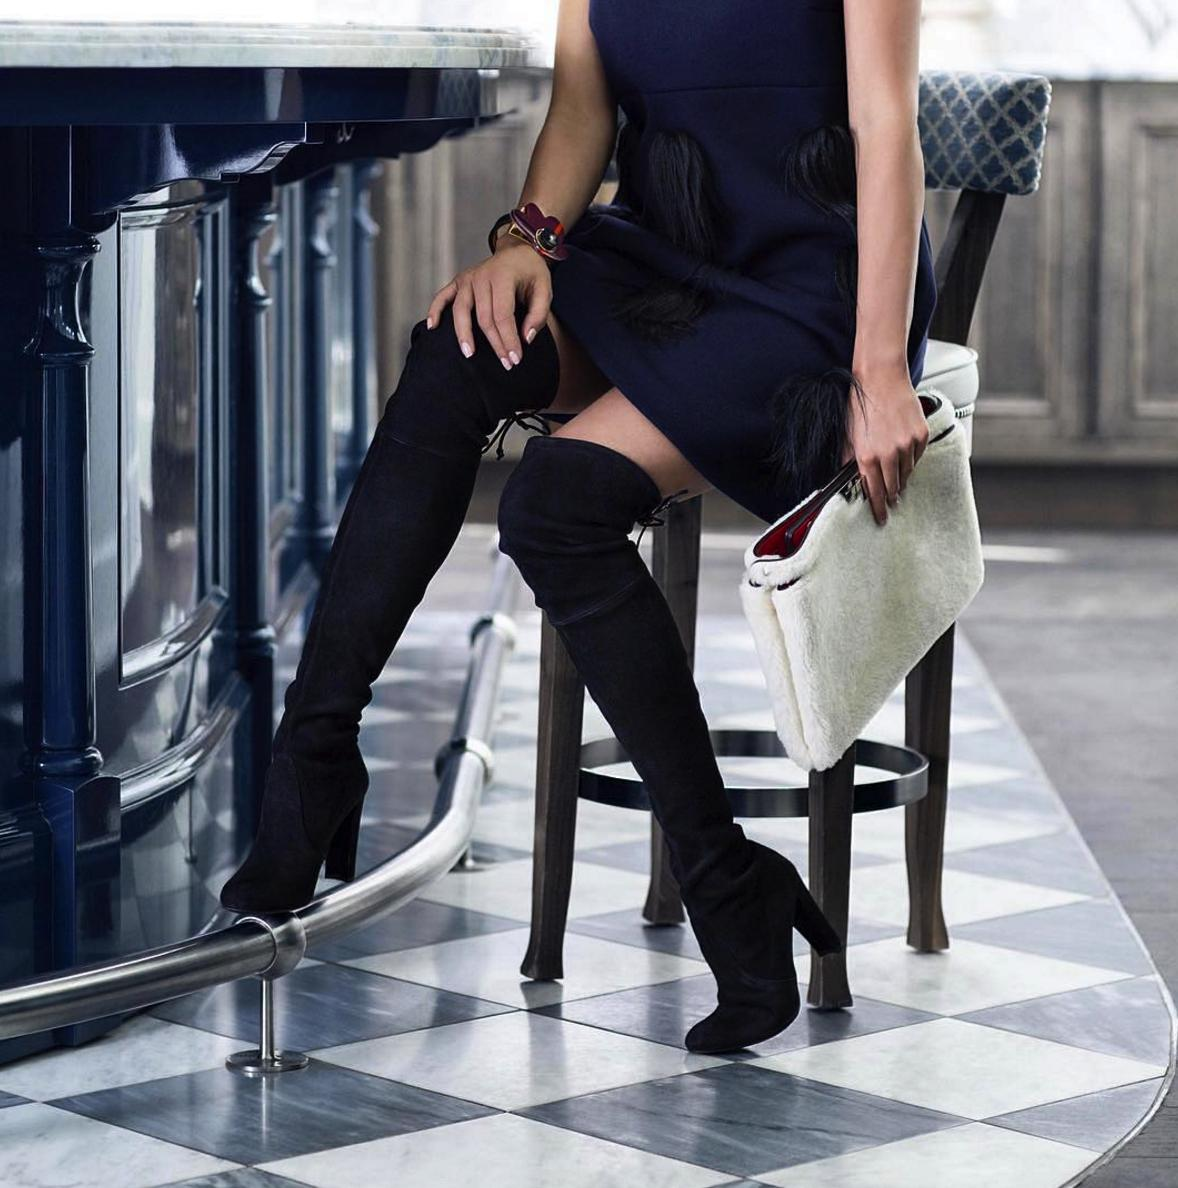 Up to 50% off Select Stuart Weitzman Boots And Sandals On Sale @ Last Call by Neiman Marcus